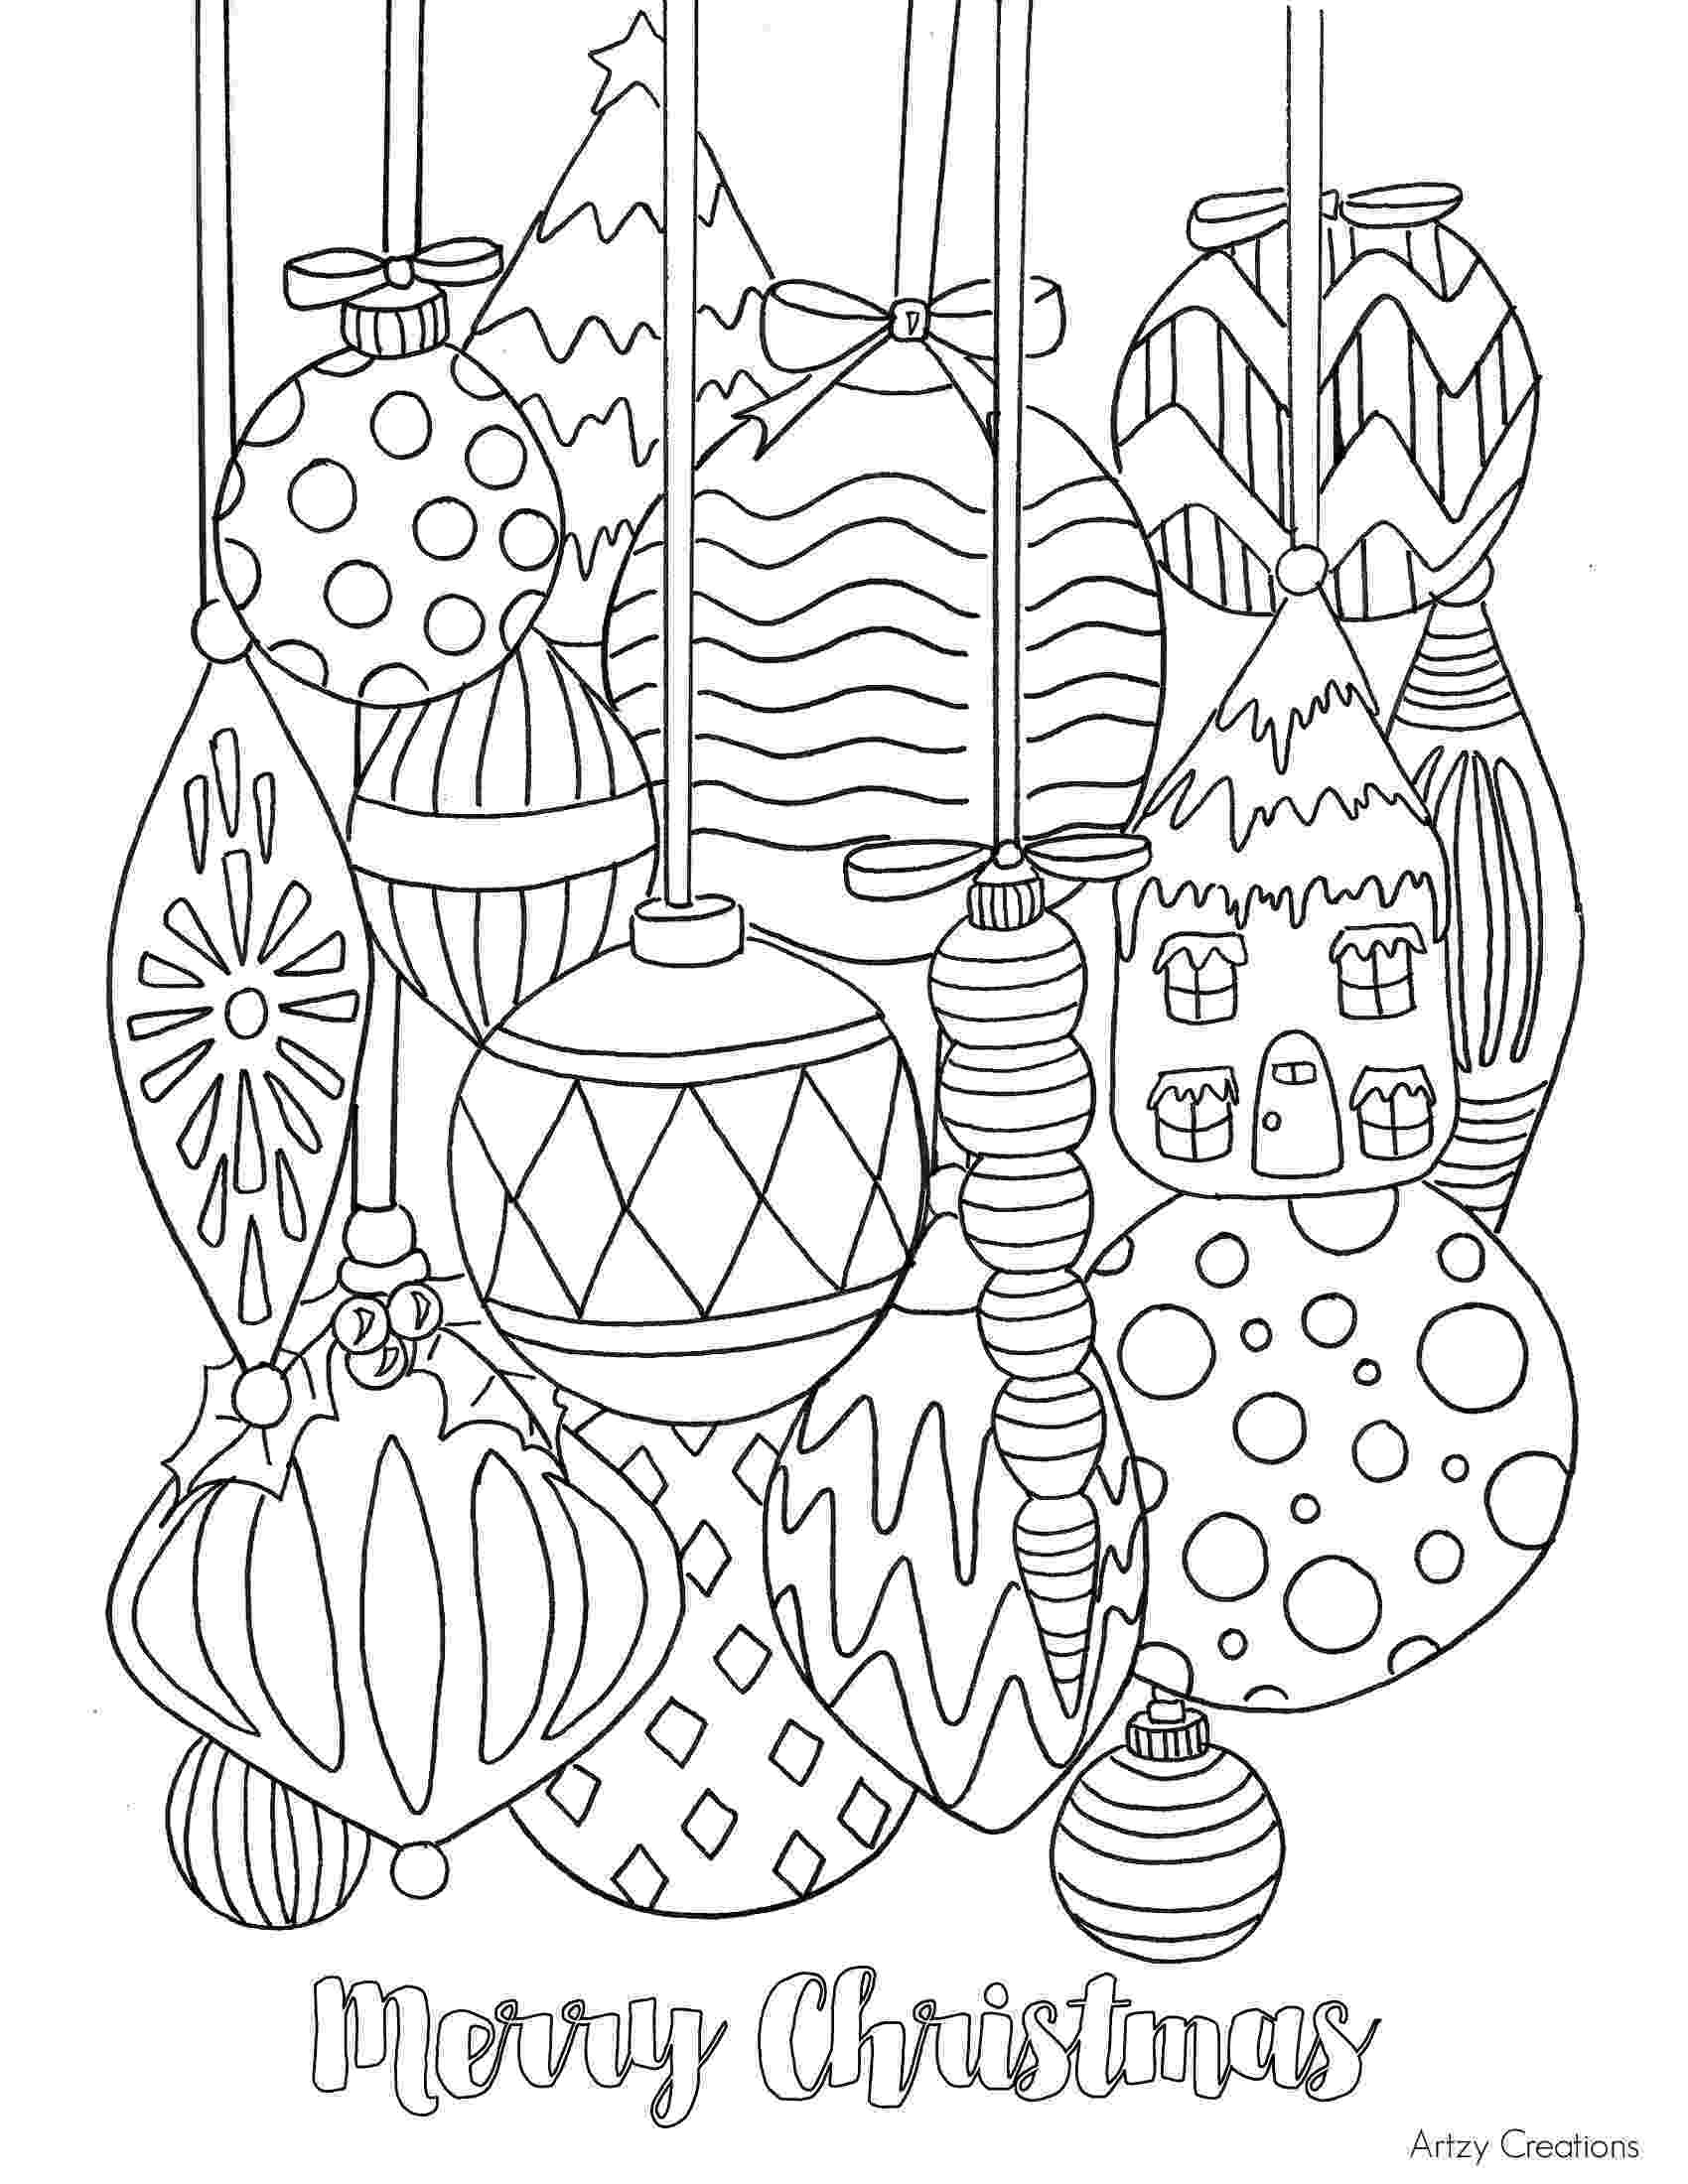 christmas ornament coloring pages christmas ornaments coloring page free printable ornament christmas pages coloring